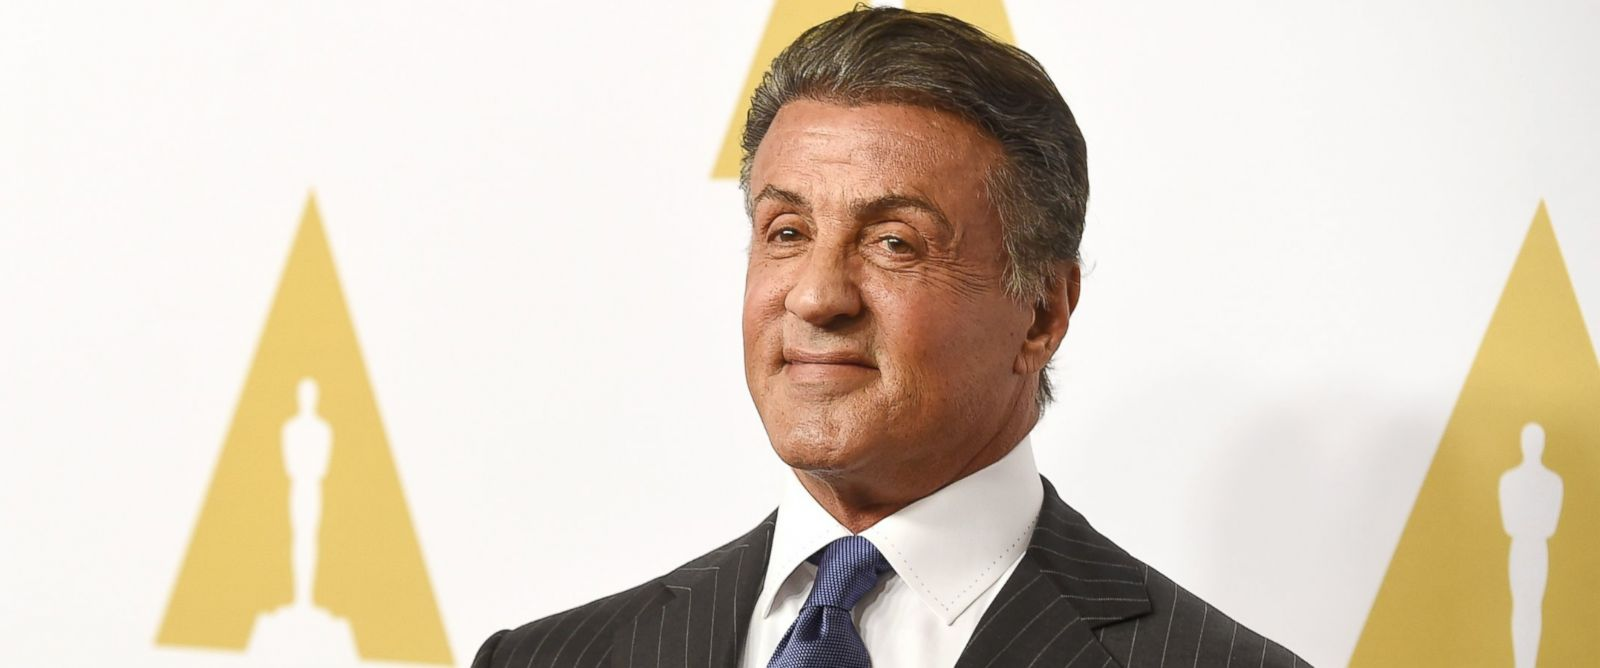 PHOTO: Sylvester Stallone attends the 88th Annual Academy Awards nominee luncheon on Feb. 8, 2016 in Beverly Hills, Calif.